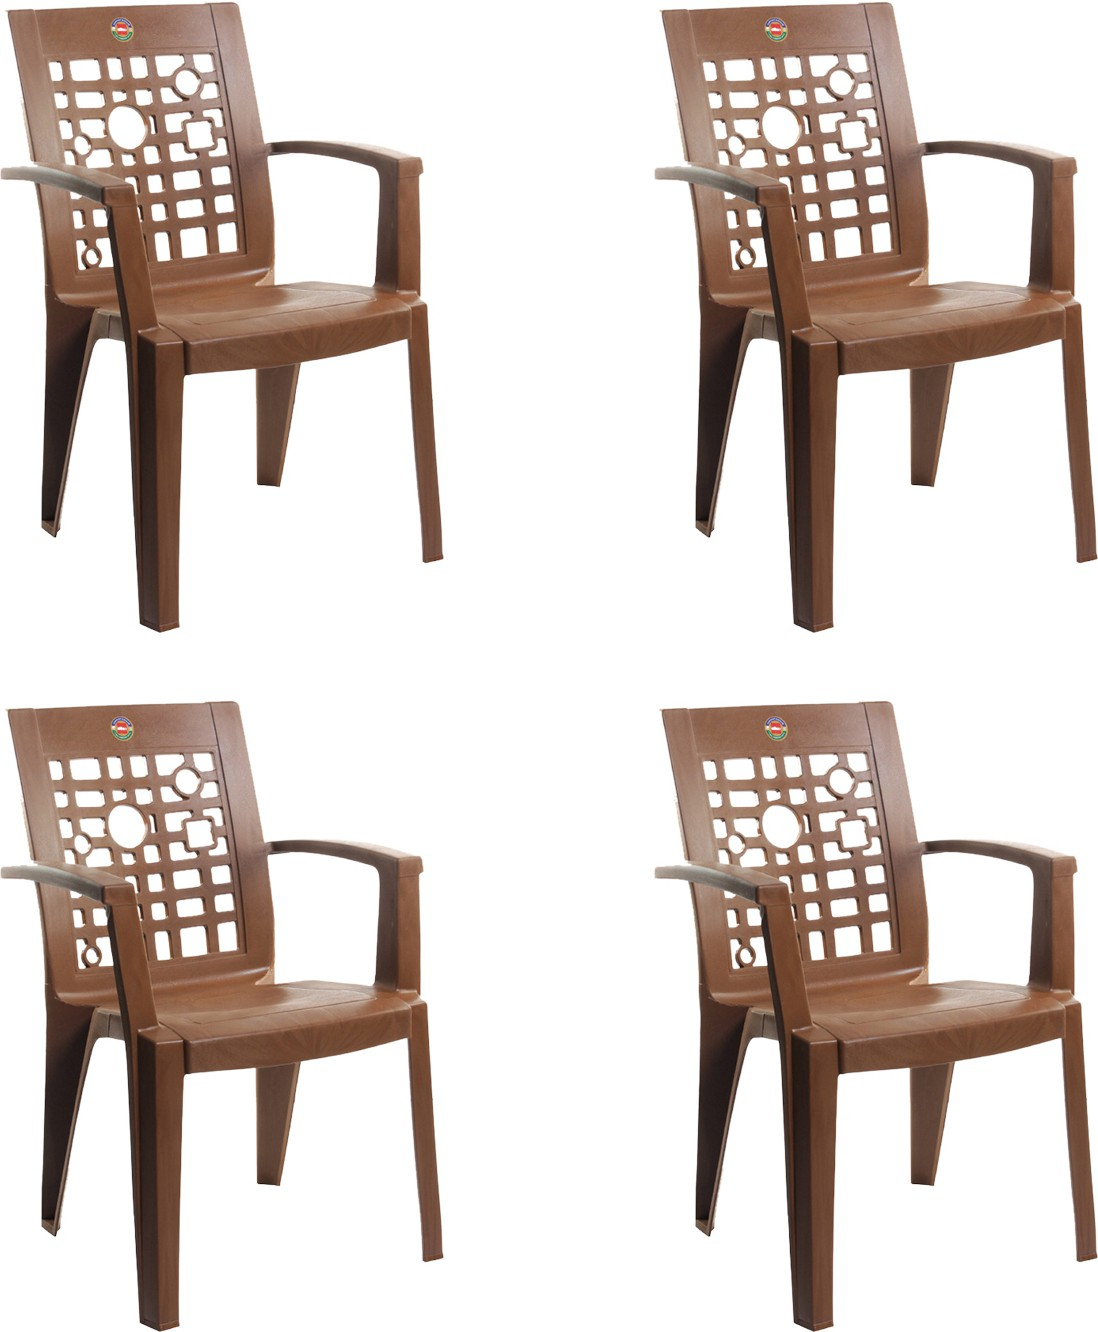 View Cello Furniture Plastic Living Room Chair(Finish Color - Sandalwood Brown) Furniture (Cello Furniture)